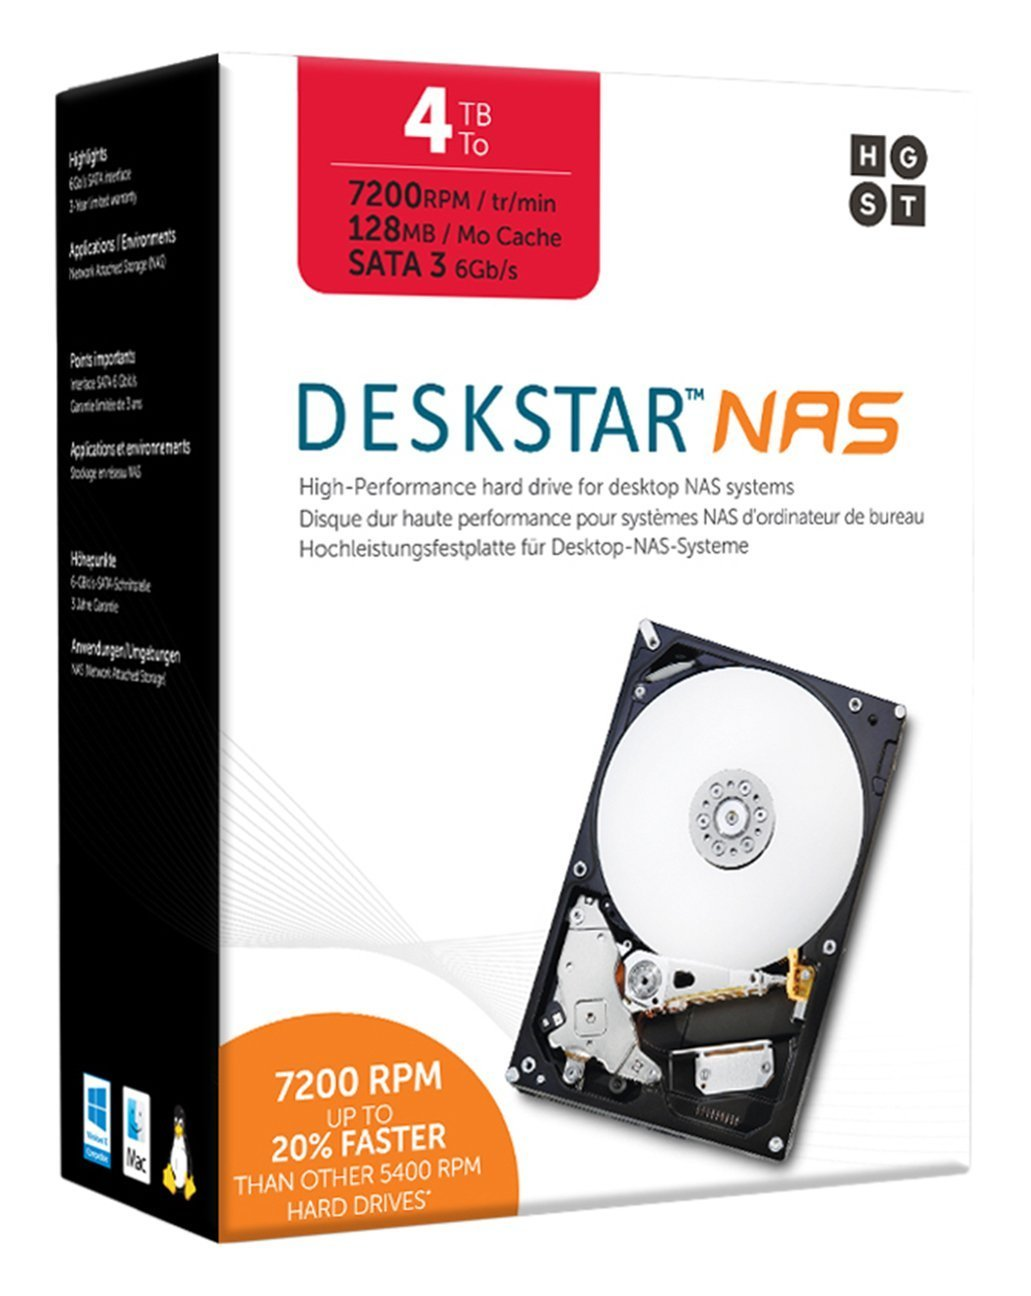 HGST DeskStar NAS 3.5'' 4TB 7200 RPM 128MB Cache SATA 6.0Gb/s High-Performance Hard Drive for Desktop NAS Systems Retail Packaging 0S04005